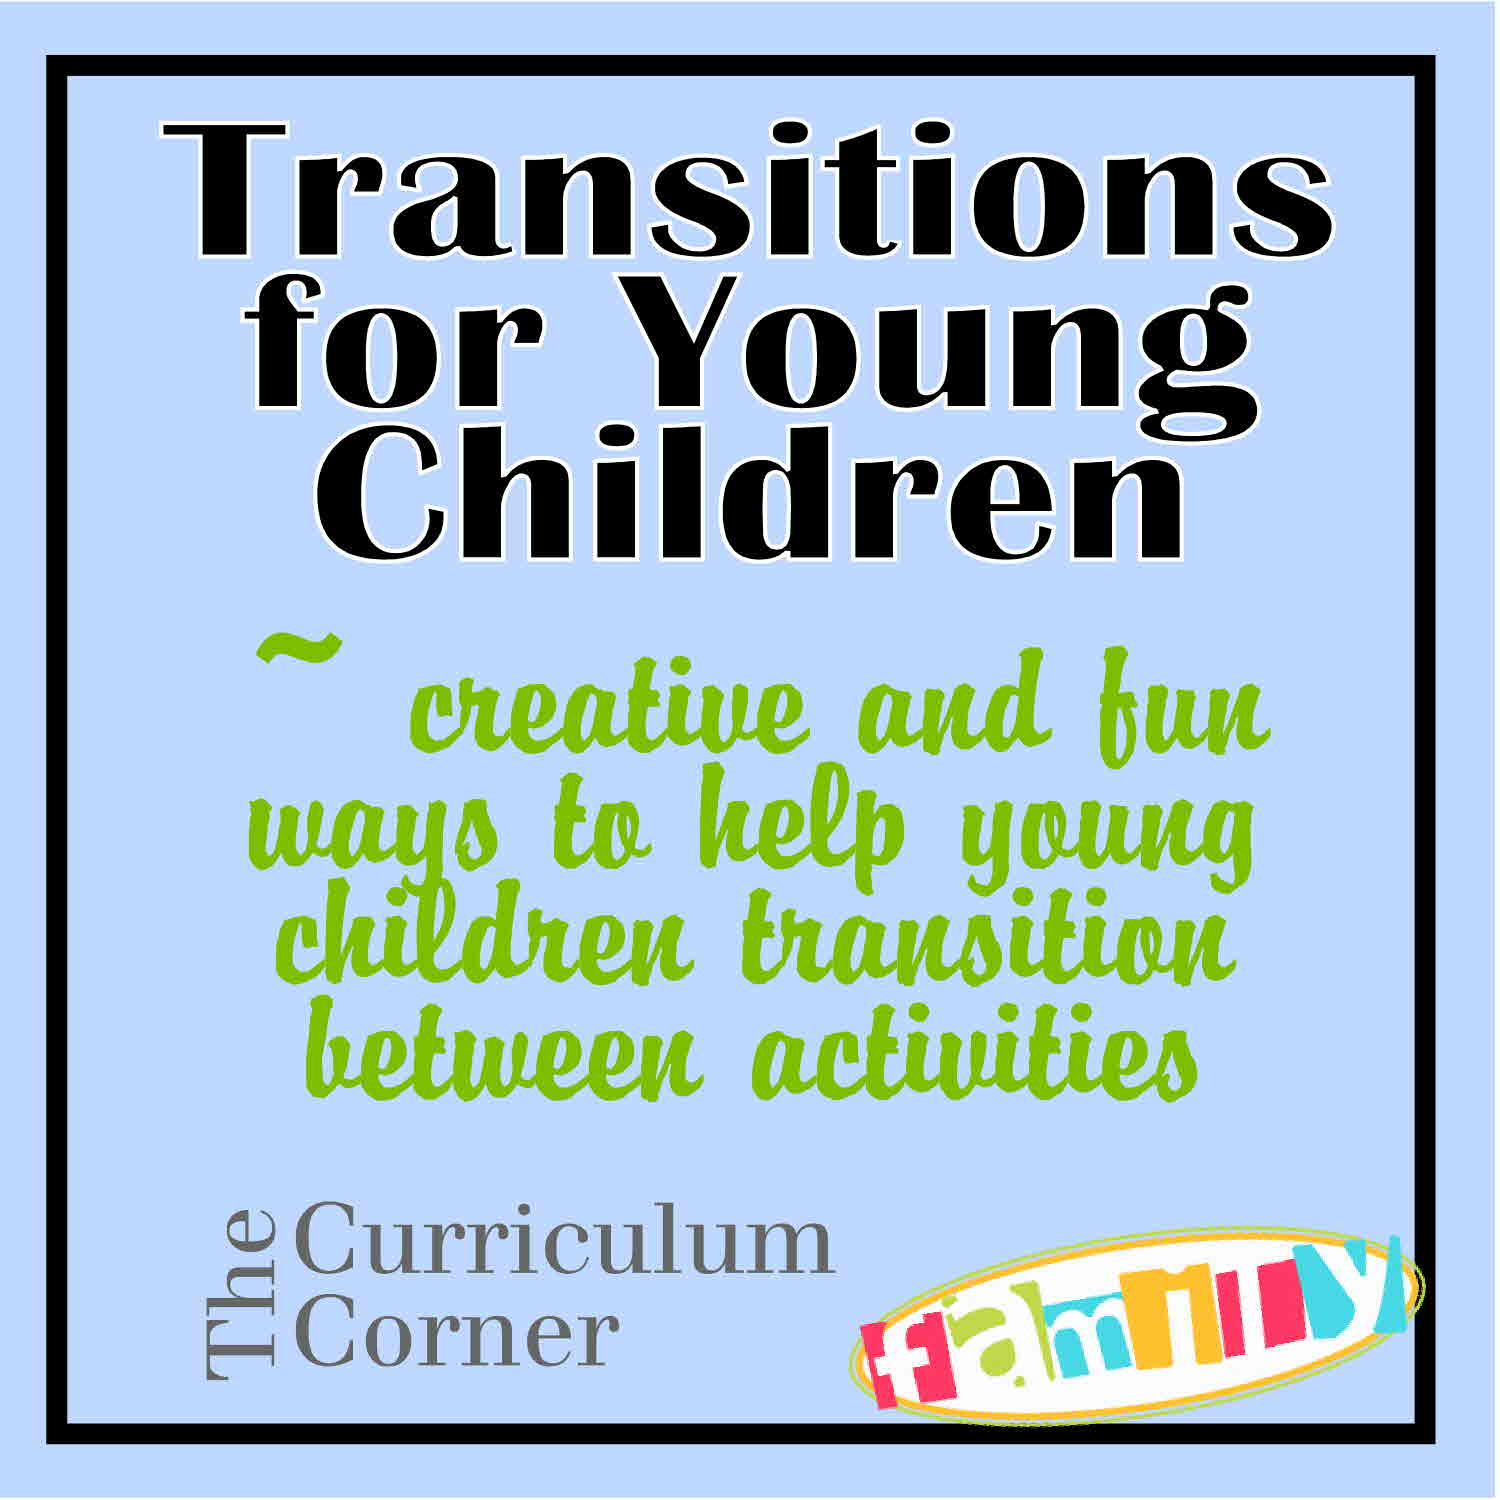 transitions in children Free essay: explain how different types of transition can affect children and young people's development transitions are changes that take place in our life.